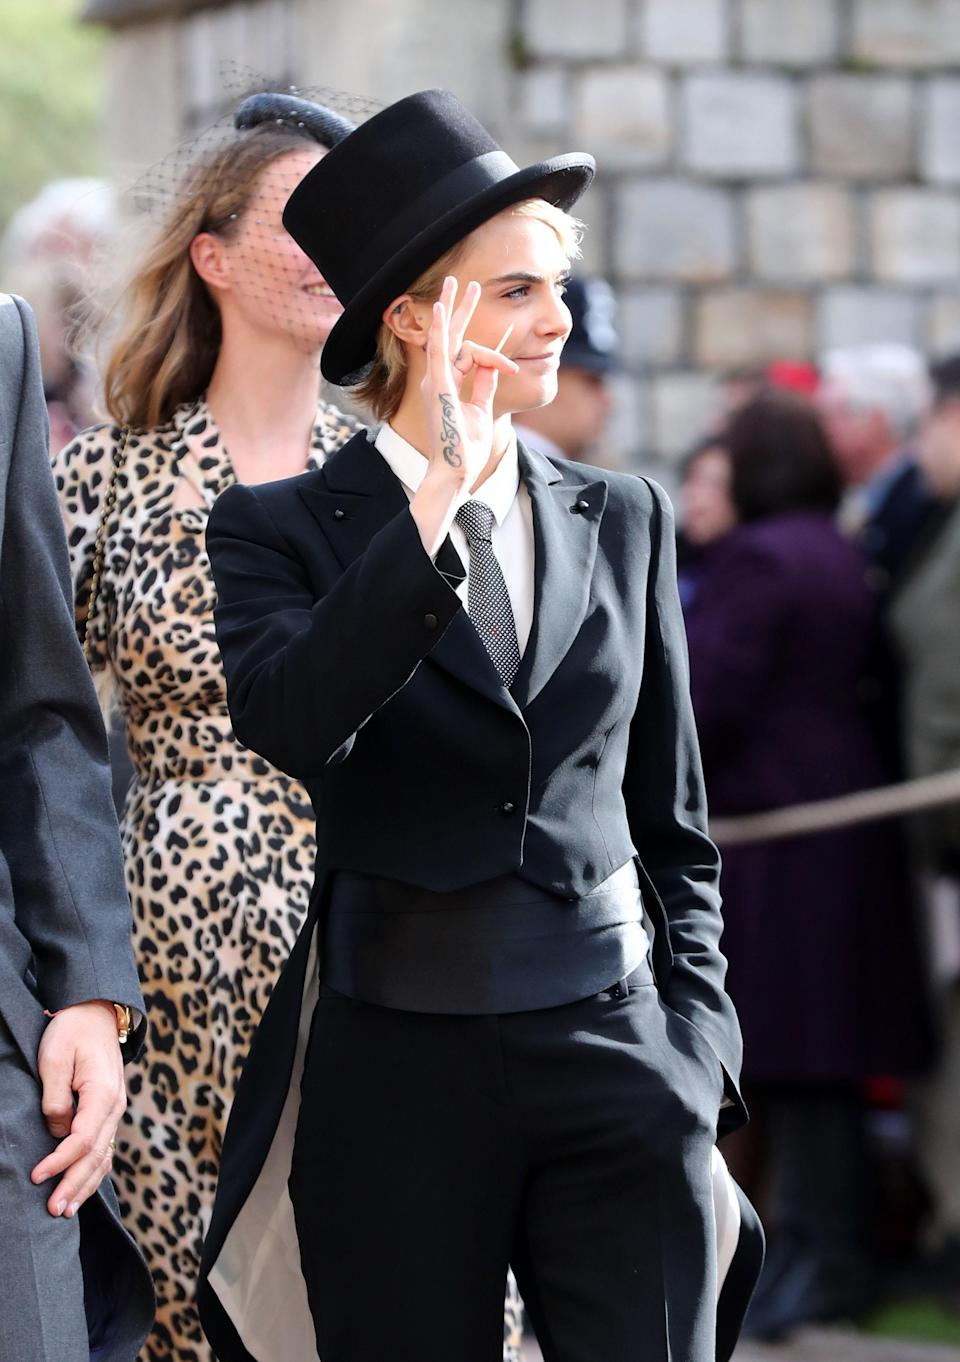 <p>When Cara Delevingne arrived in a top hat and tails putting a twist on the royal dress code. Hey, it's 2018 after all! </p>